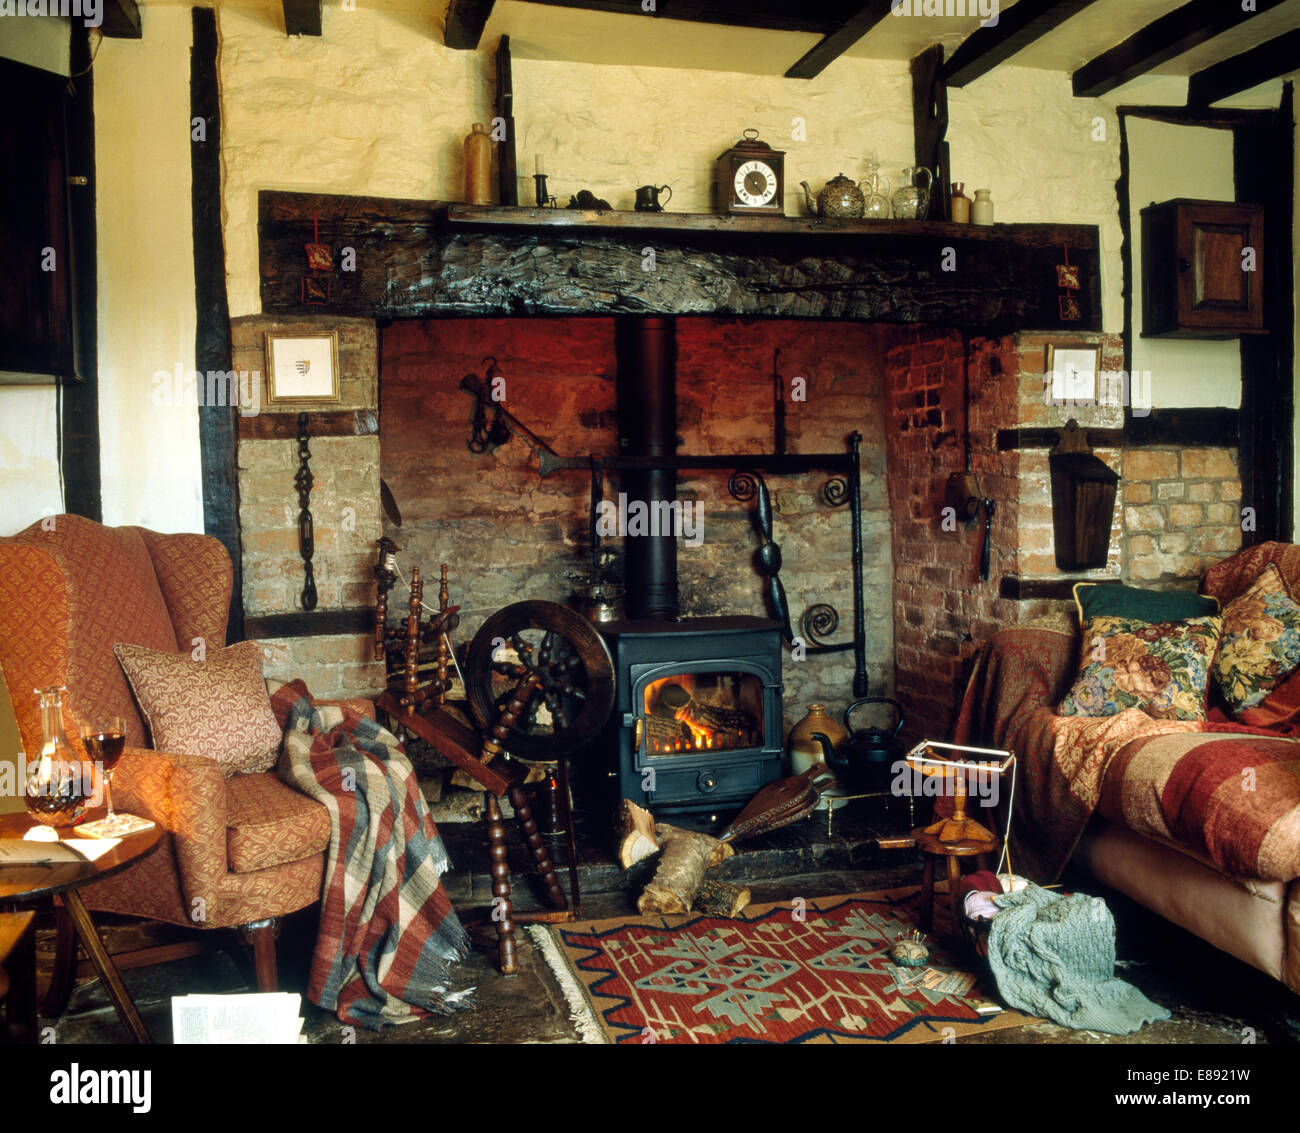 sofa and armchair piled with cushions in country living room with